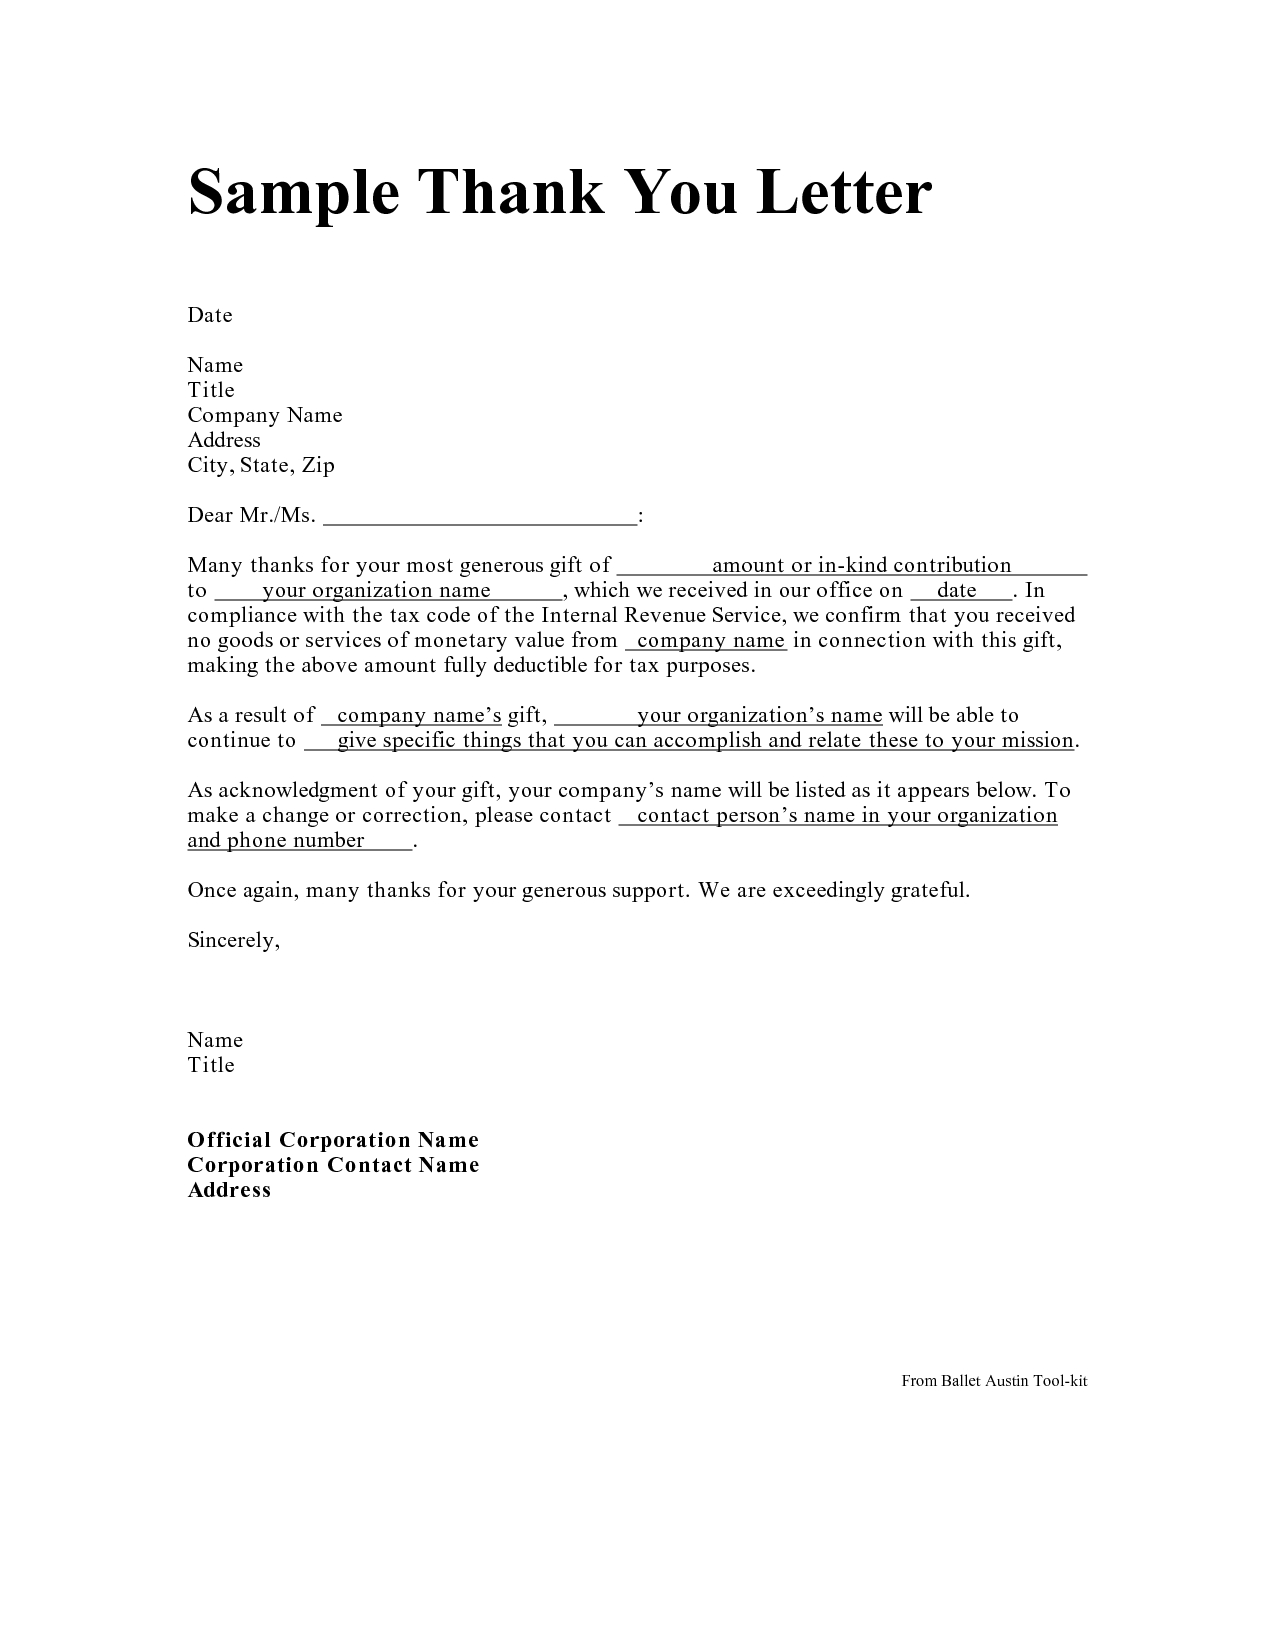 personal fundraising letter template example-Personal Thank You Letter Personal Thank You Letter Samples Writing Thank You Notes 4-i